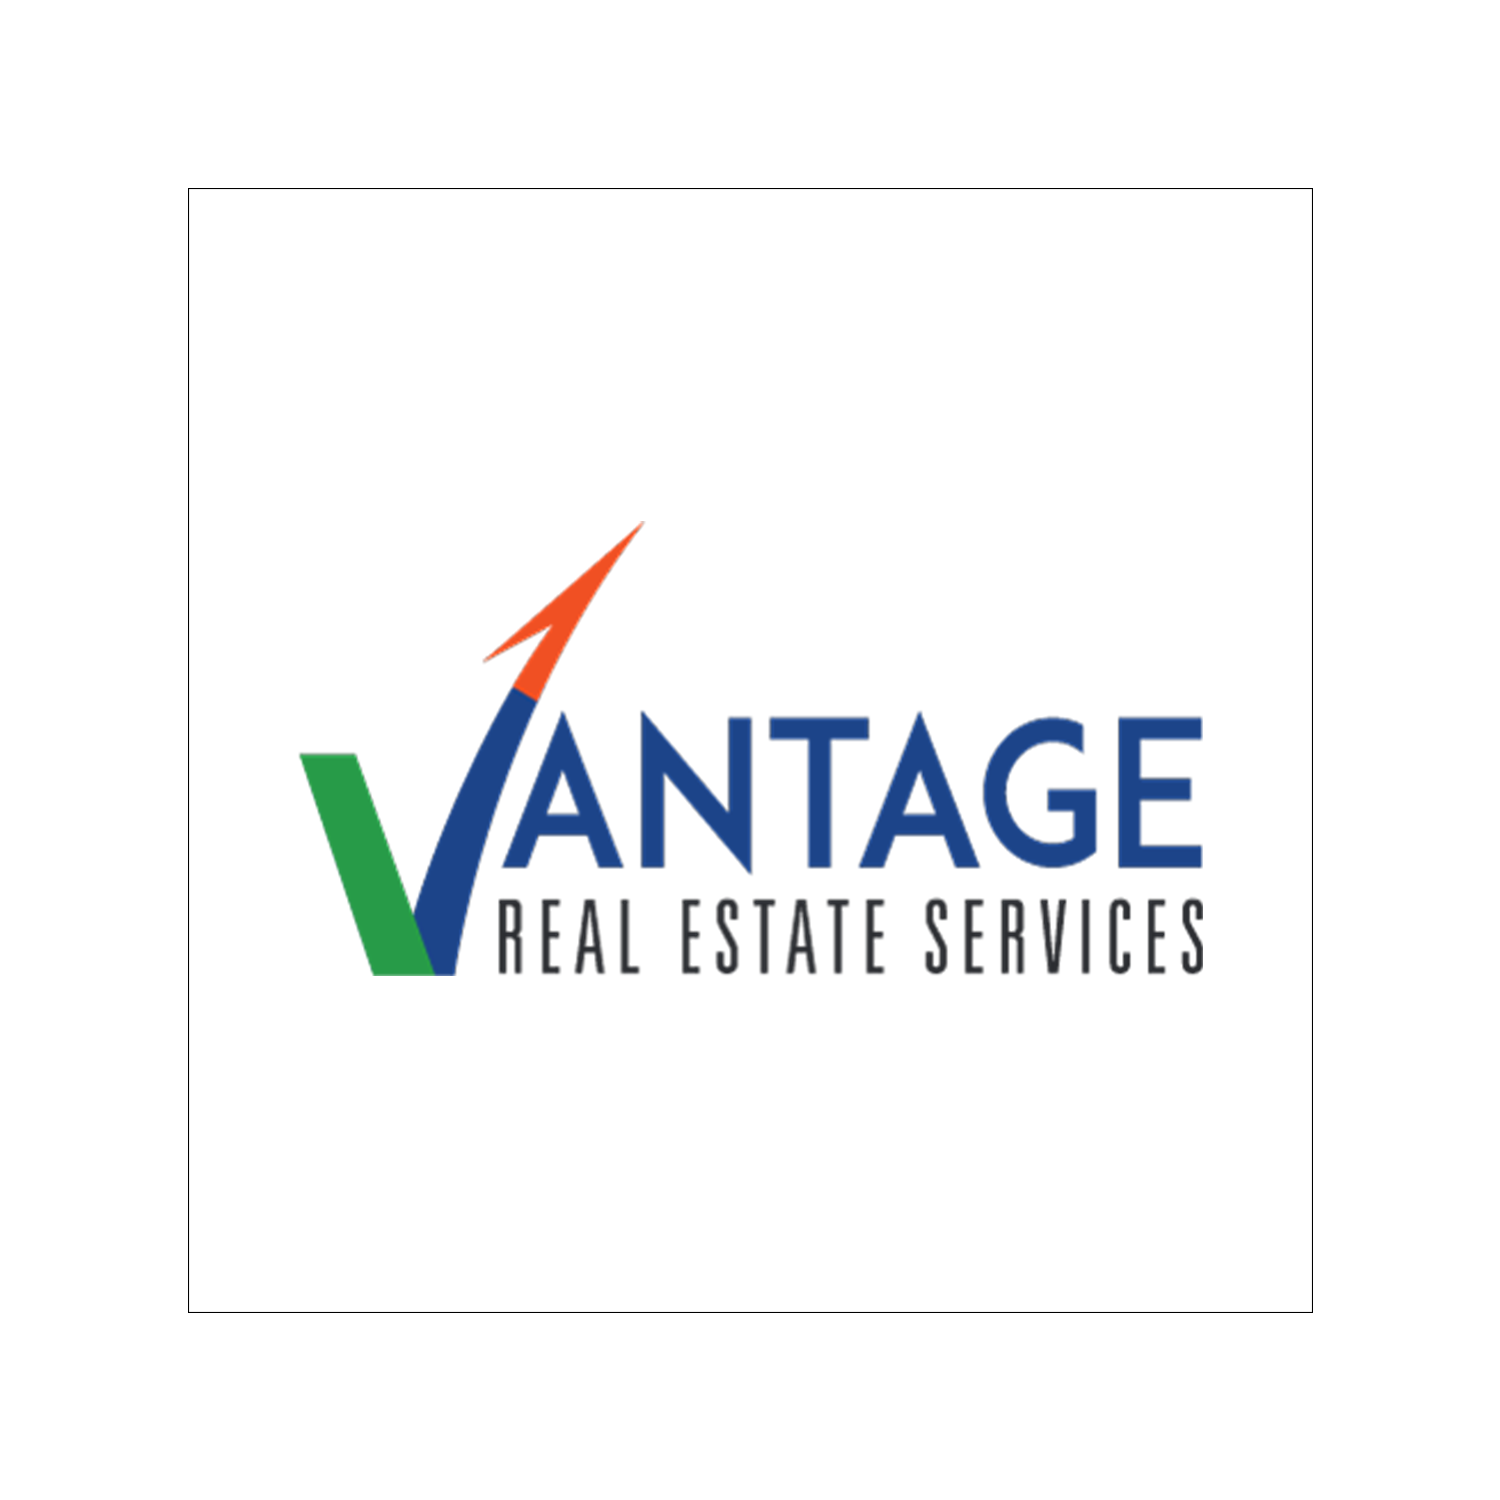 Vantage Real Estate Services